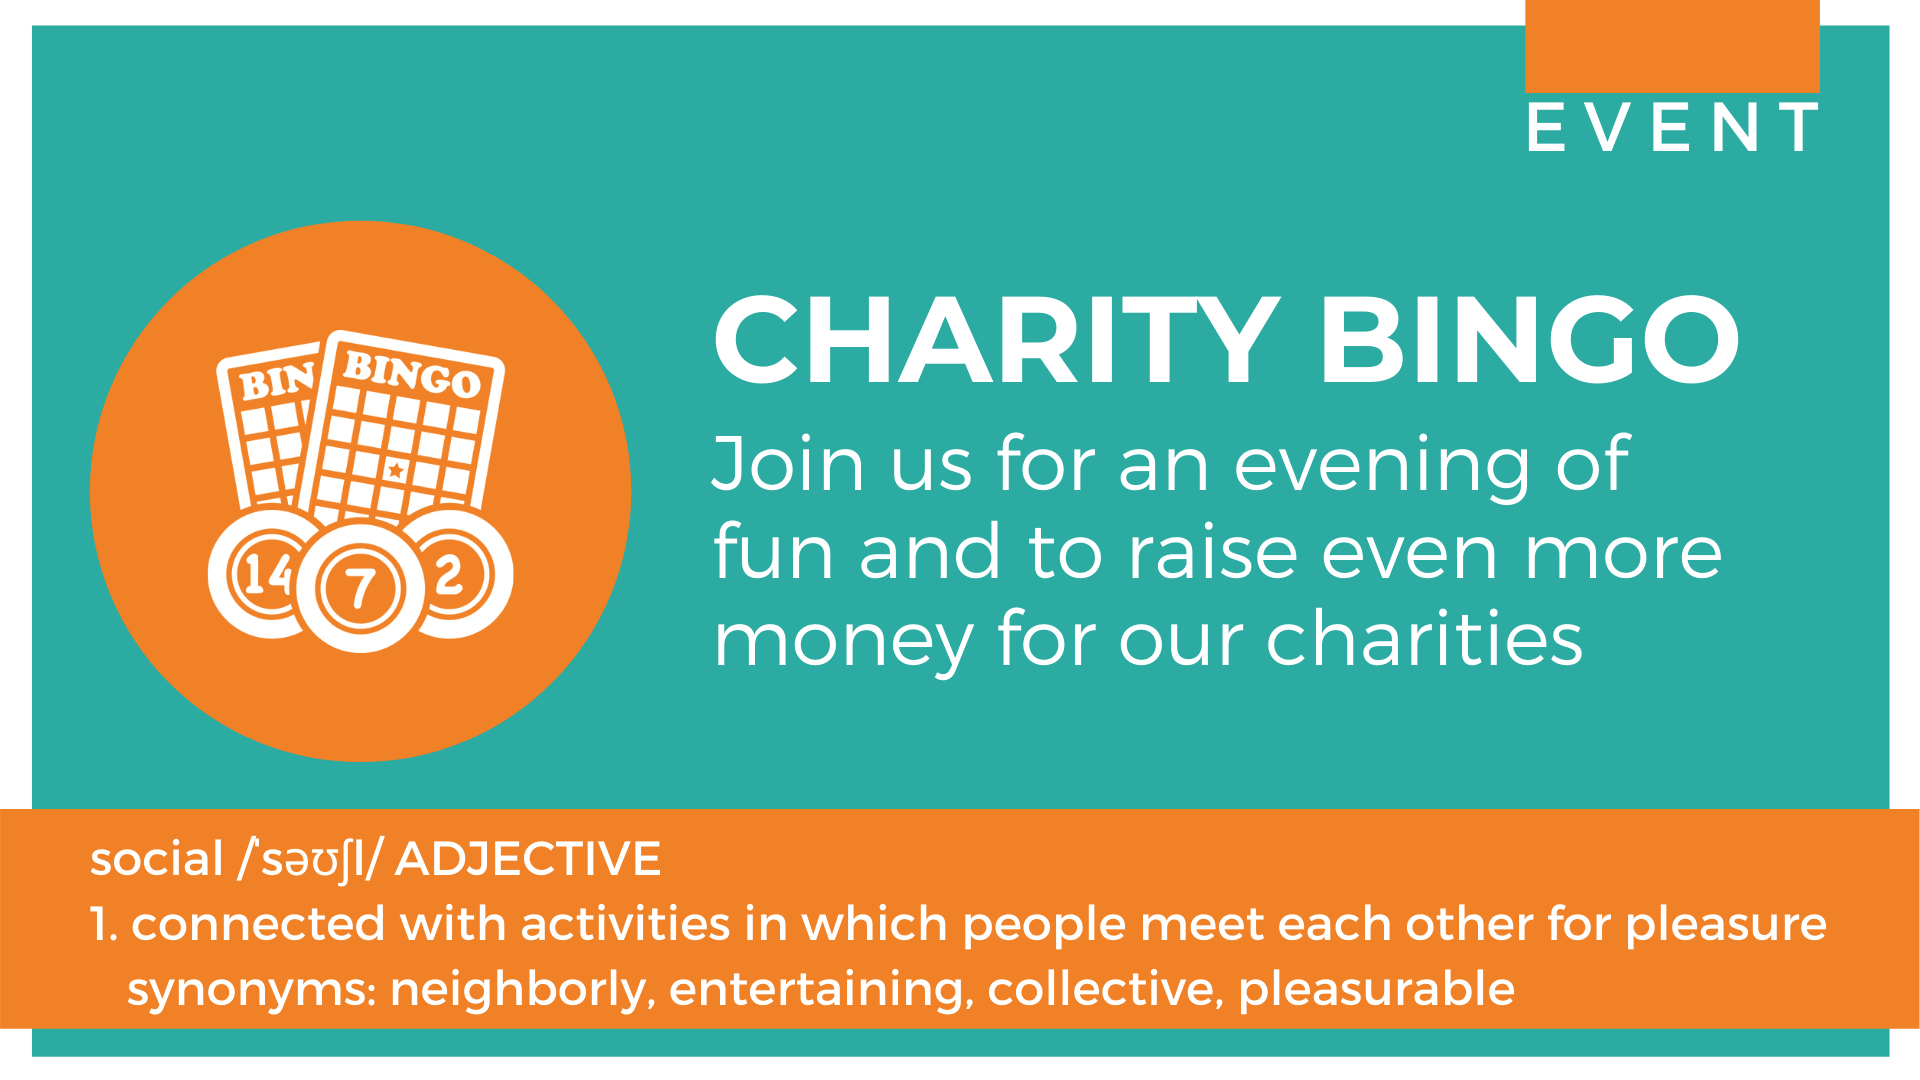 Eyes down for the NetworkIN charity bingo event